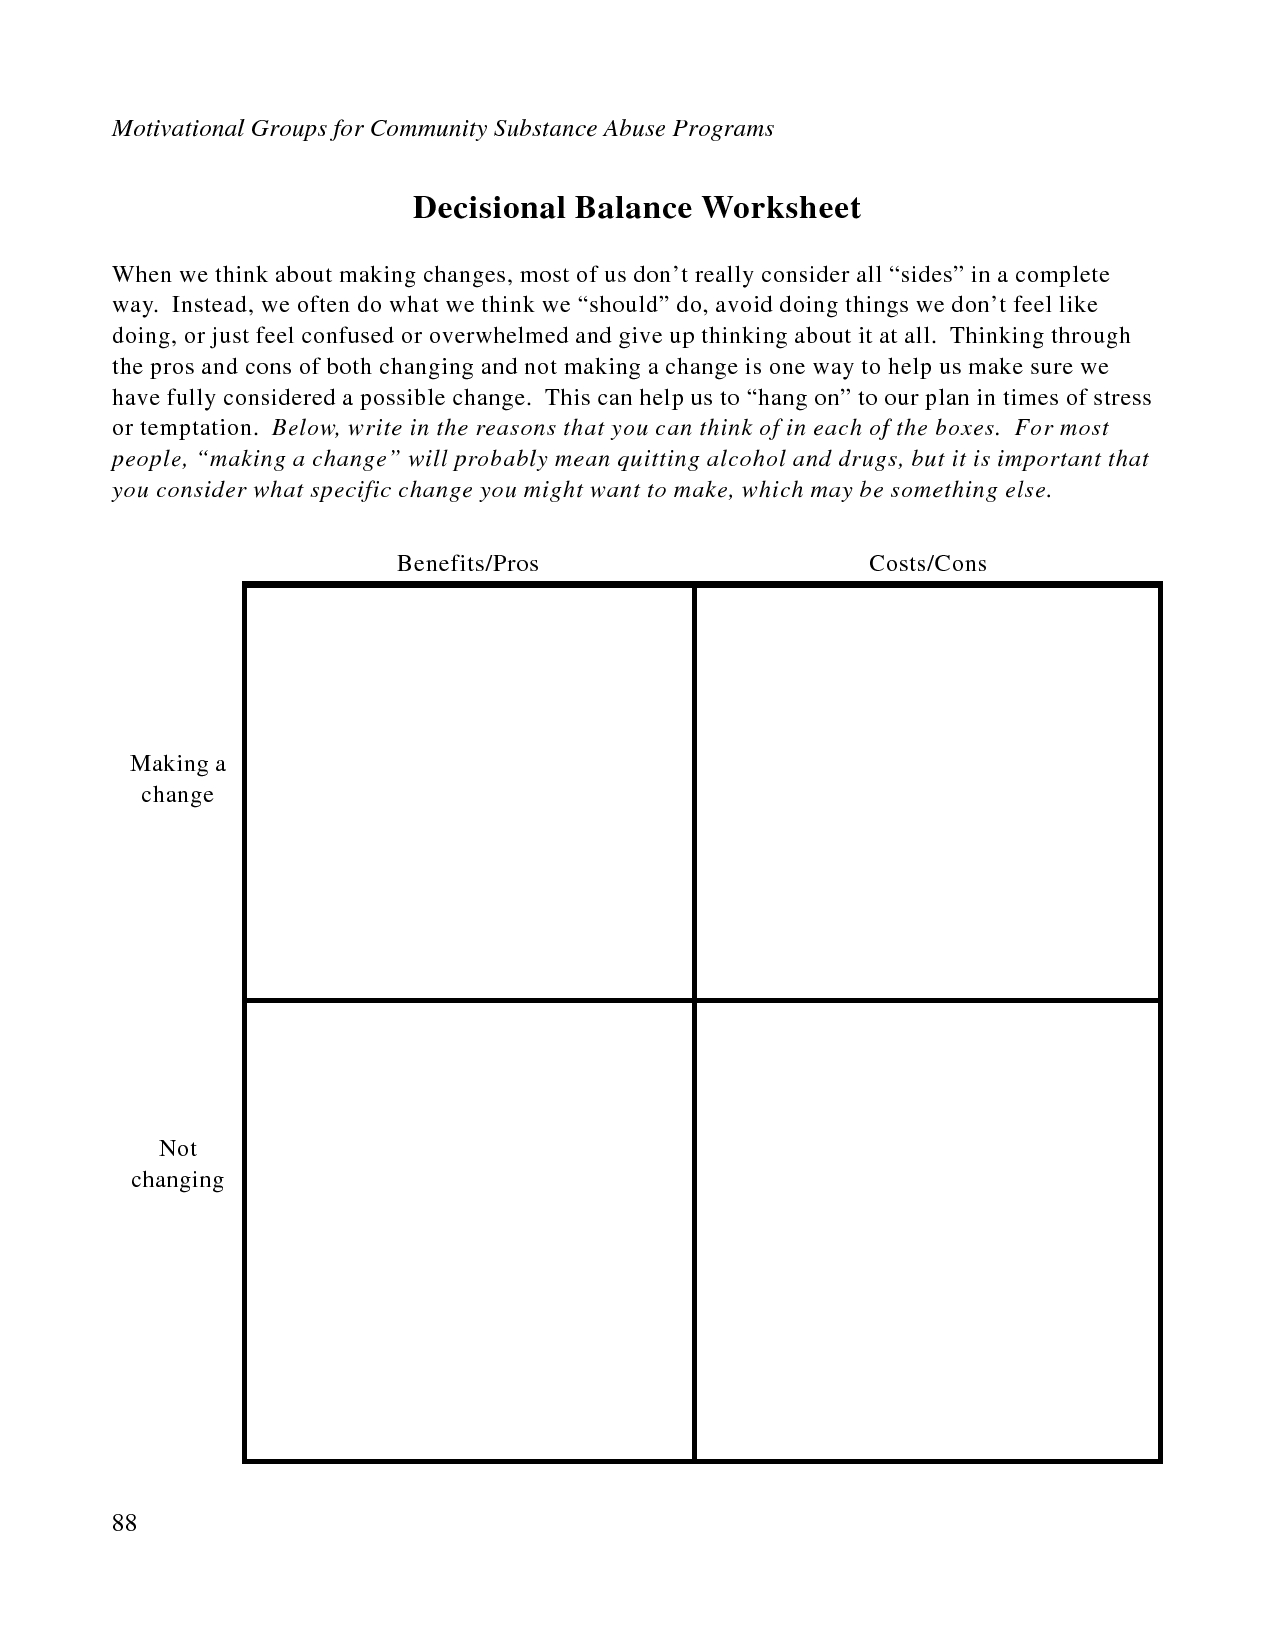 Free Printable Dbt Worksheets | Decisional Balance Worksheet - Pdf - Free Printable Counseling Worksheets